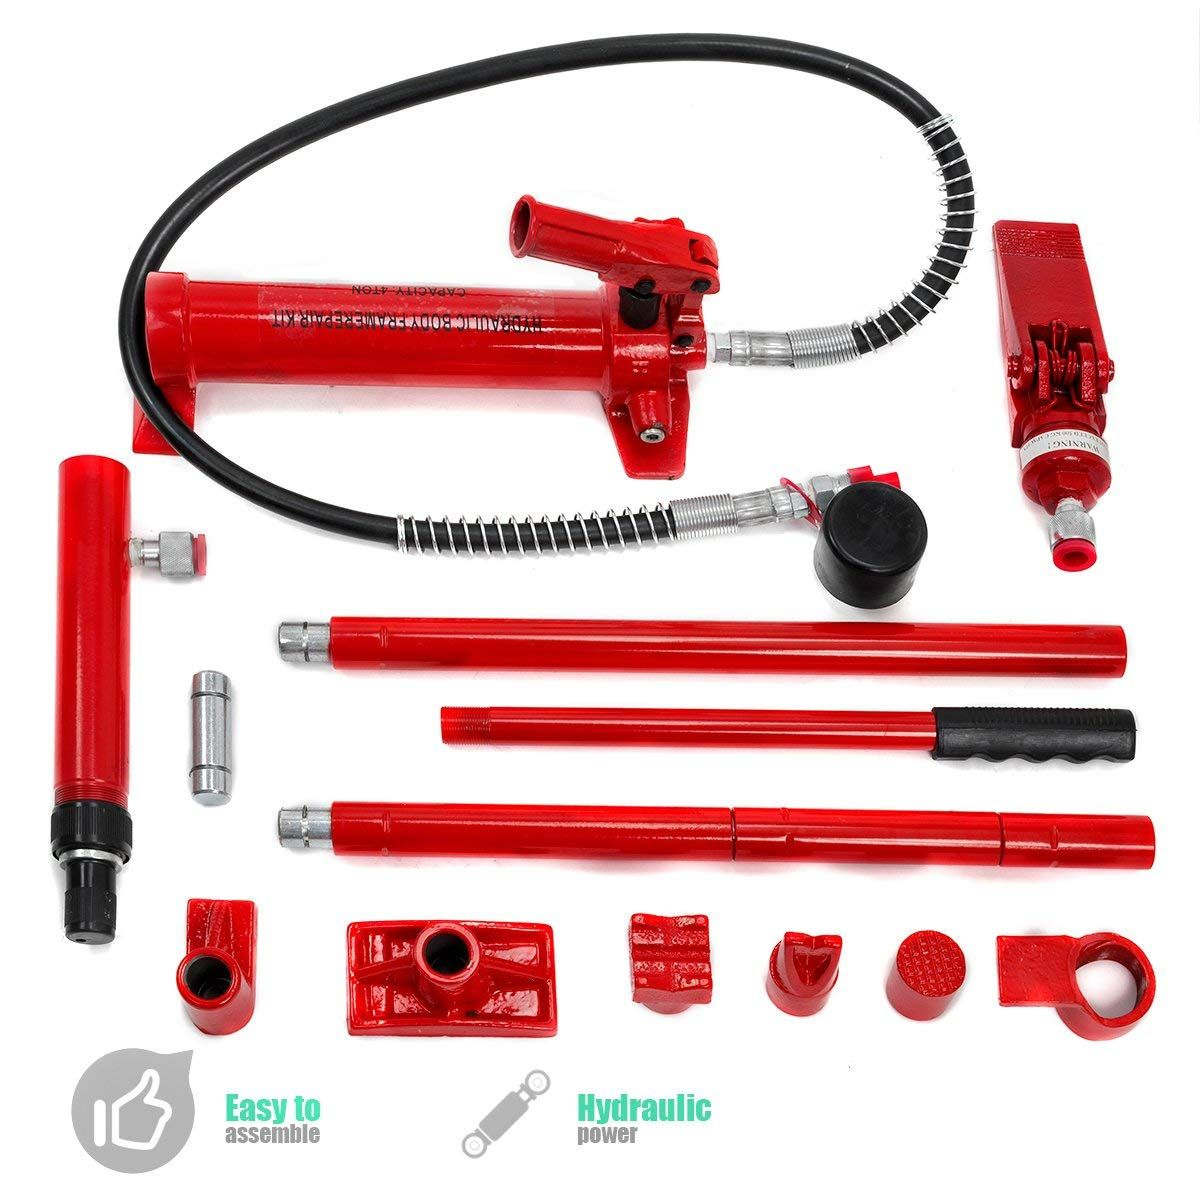 Xtremepowerus Hydraulic Porta Power Auto Body Frame Repair Kit 10 Ton Or 4 Ton Auto Body Repair Frame